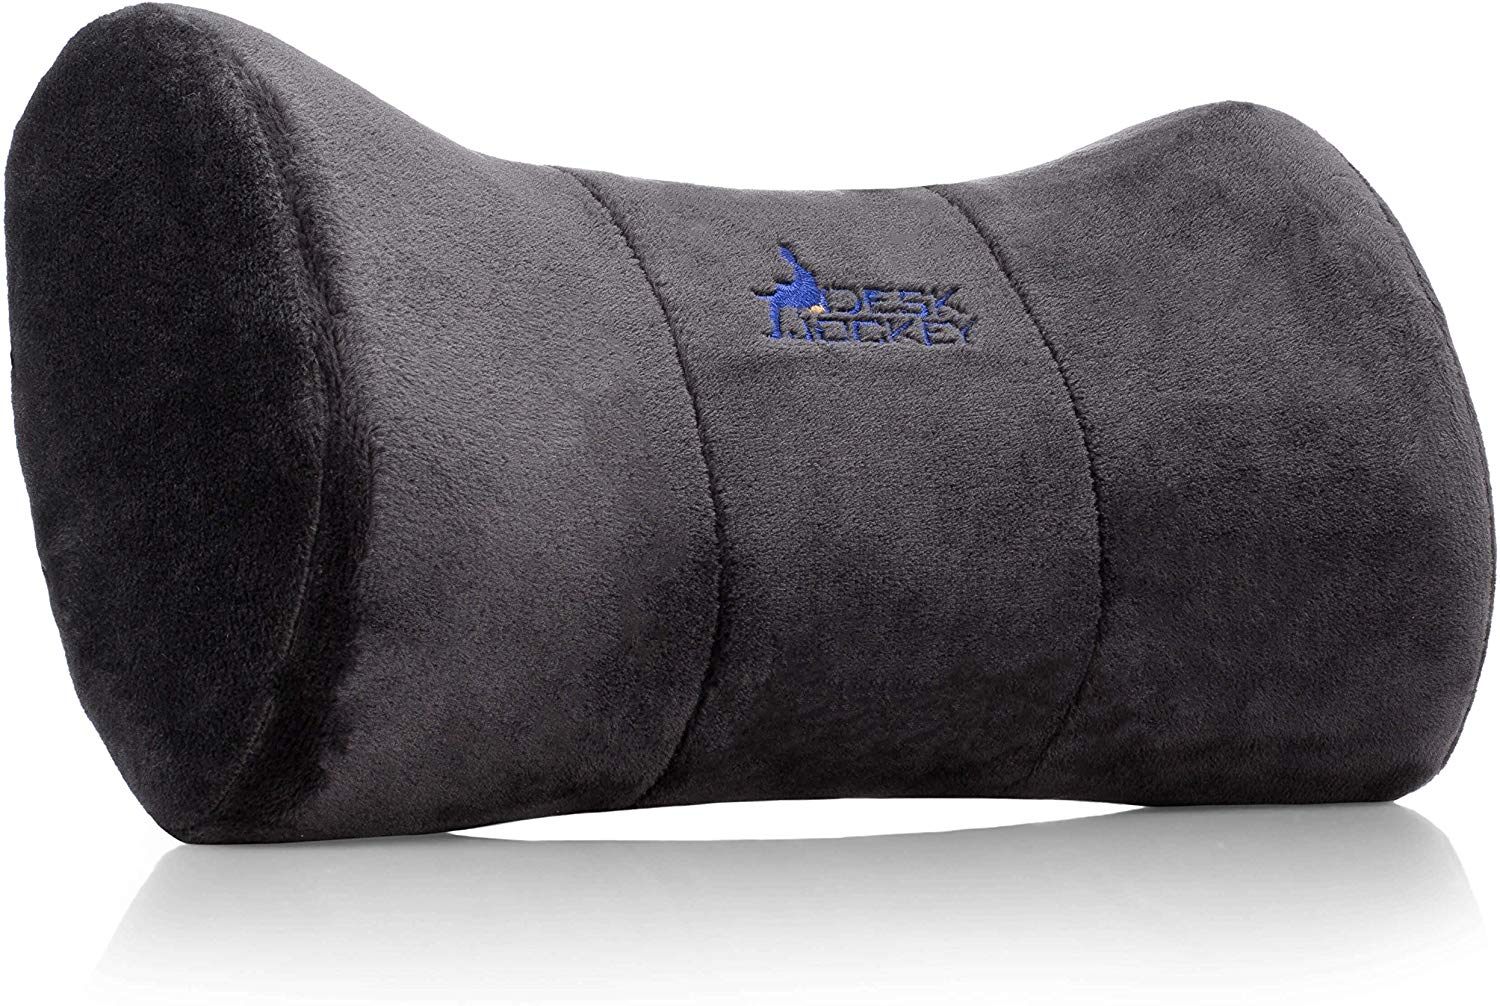 Are you looking for the best neck posture pillow to maintain spinal alignment? This article reviews the best neck pillows and neck rolls in 2021, according to a doctor's medical advice.